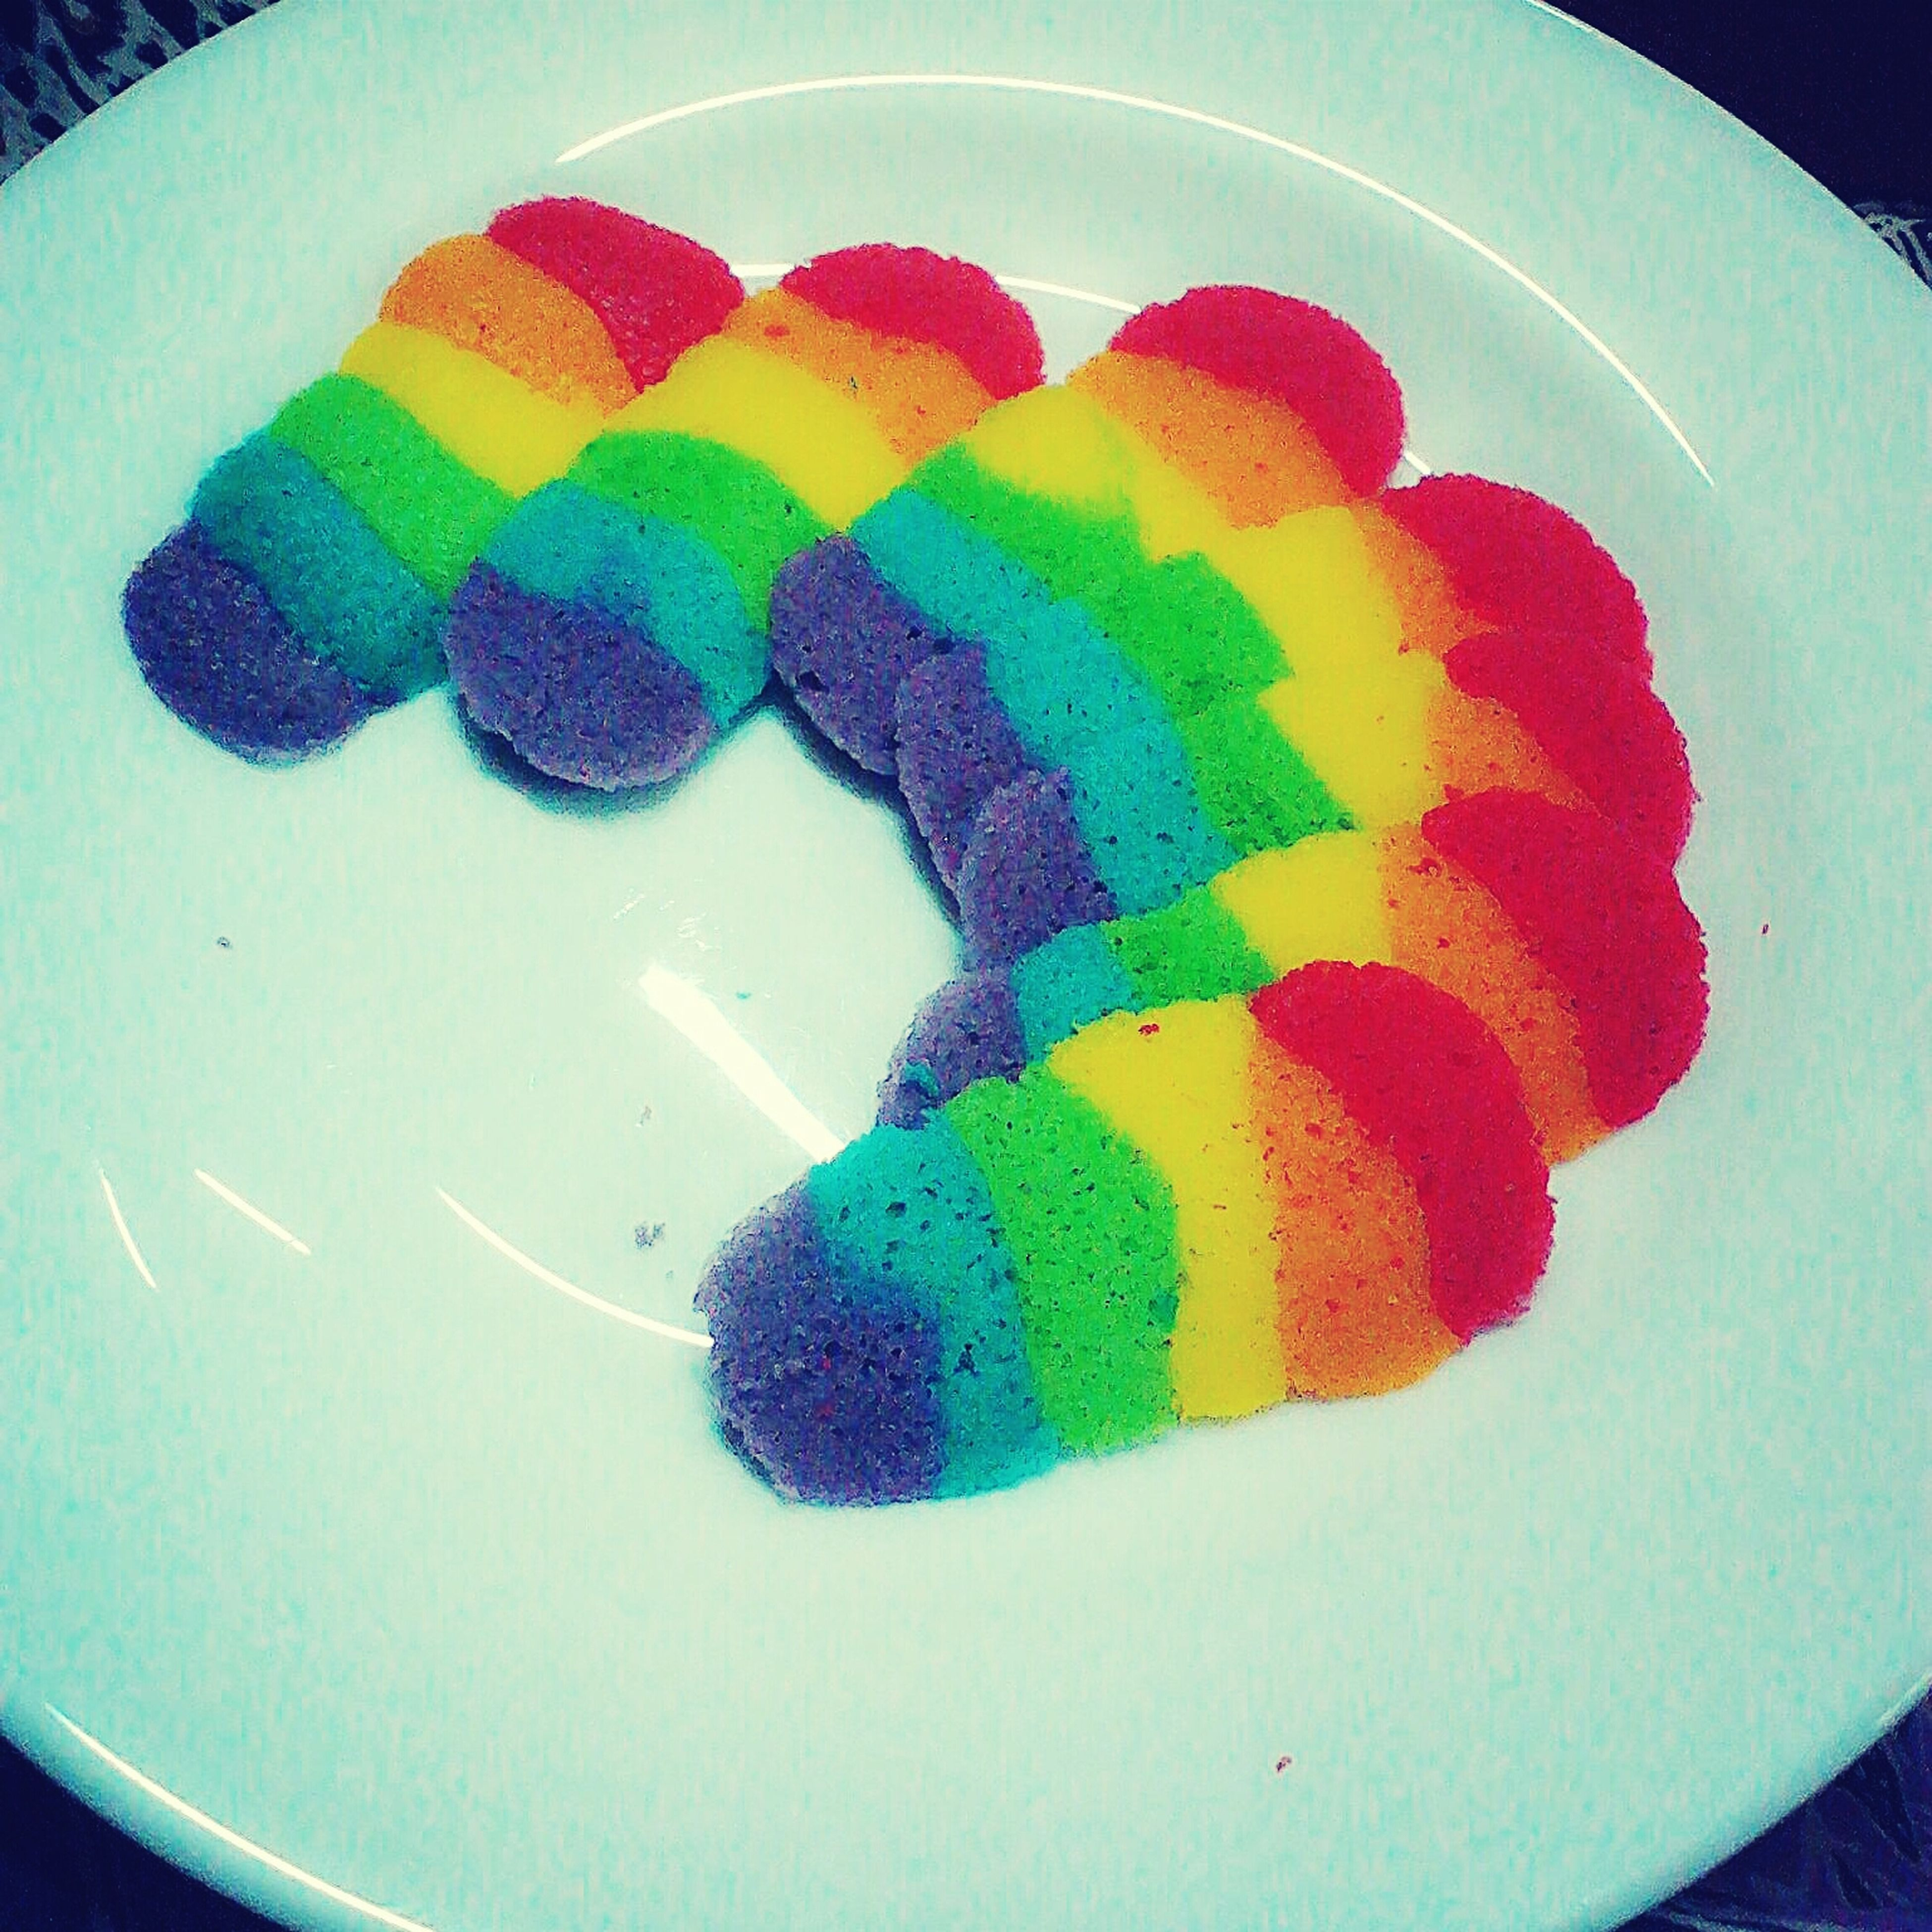 Malaysian Rainbow Cookies : Biskut Lidah Kucing ( Cat Tongue Biscuits ) Rainbow Sweet Biscuit Malaysian Food